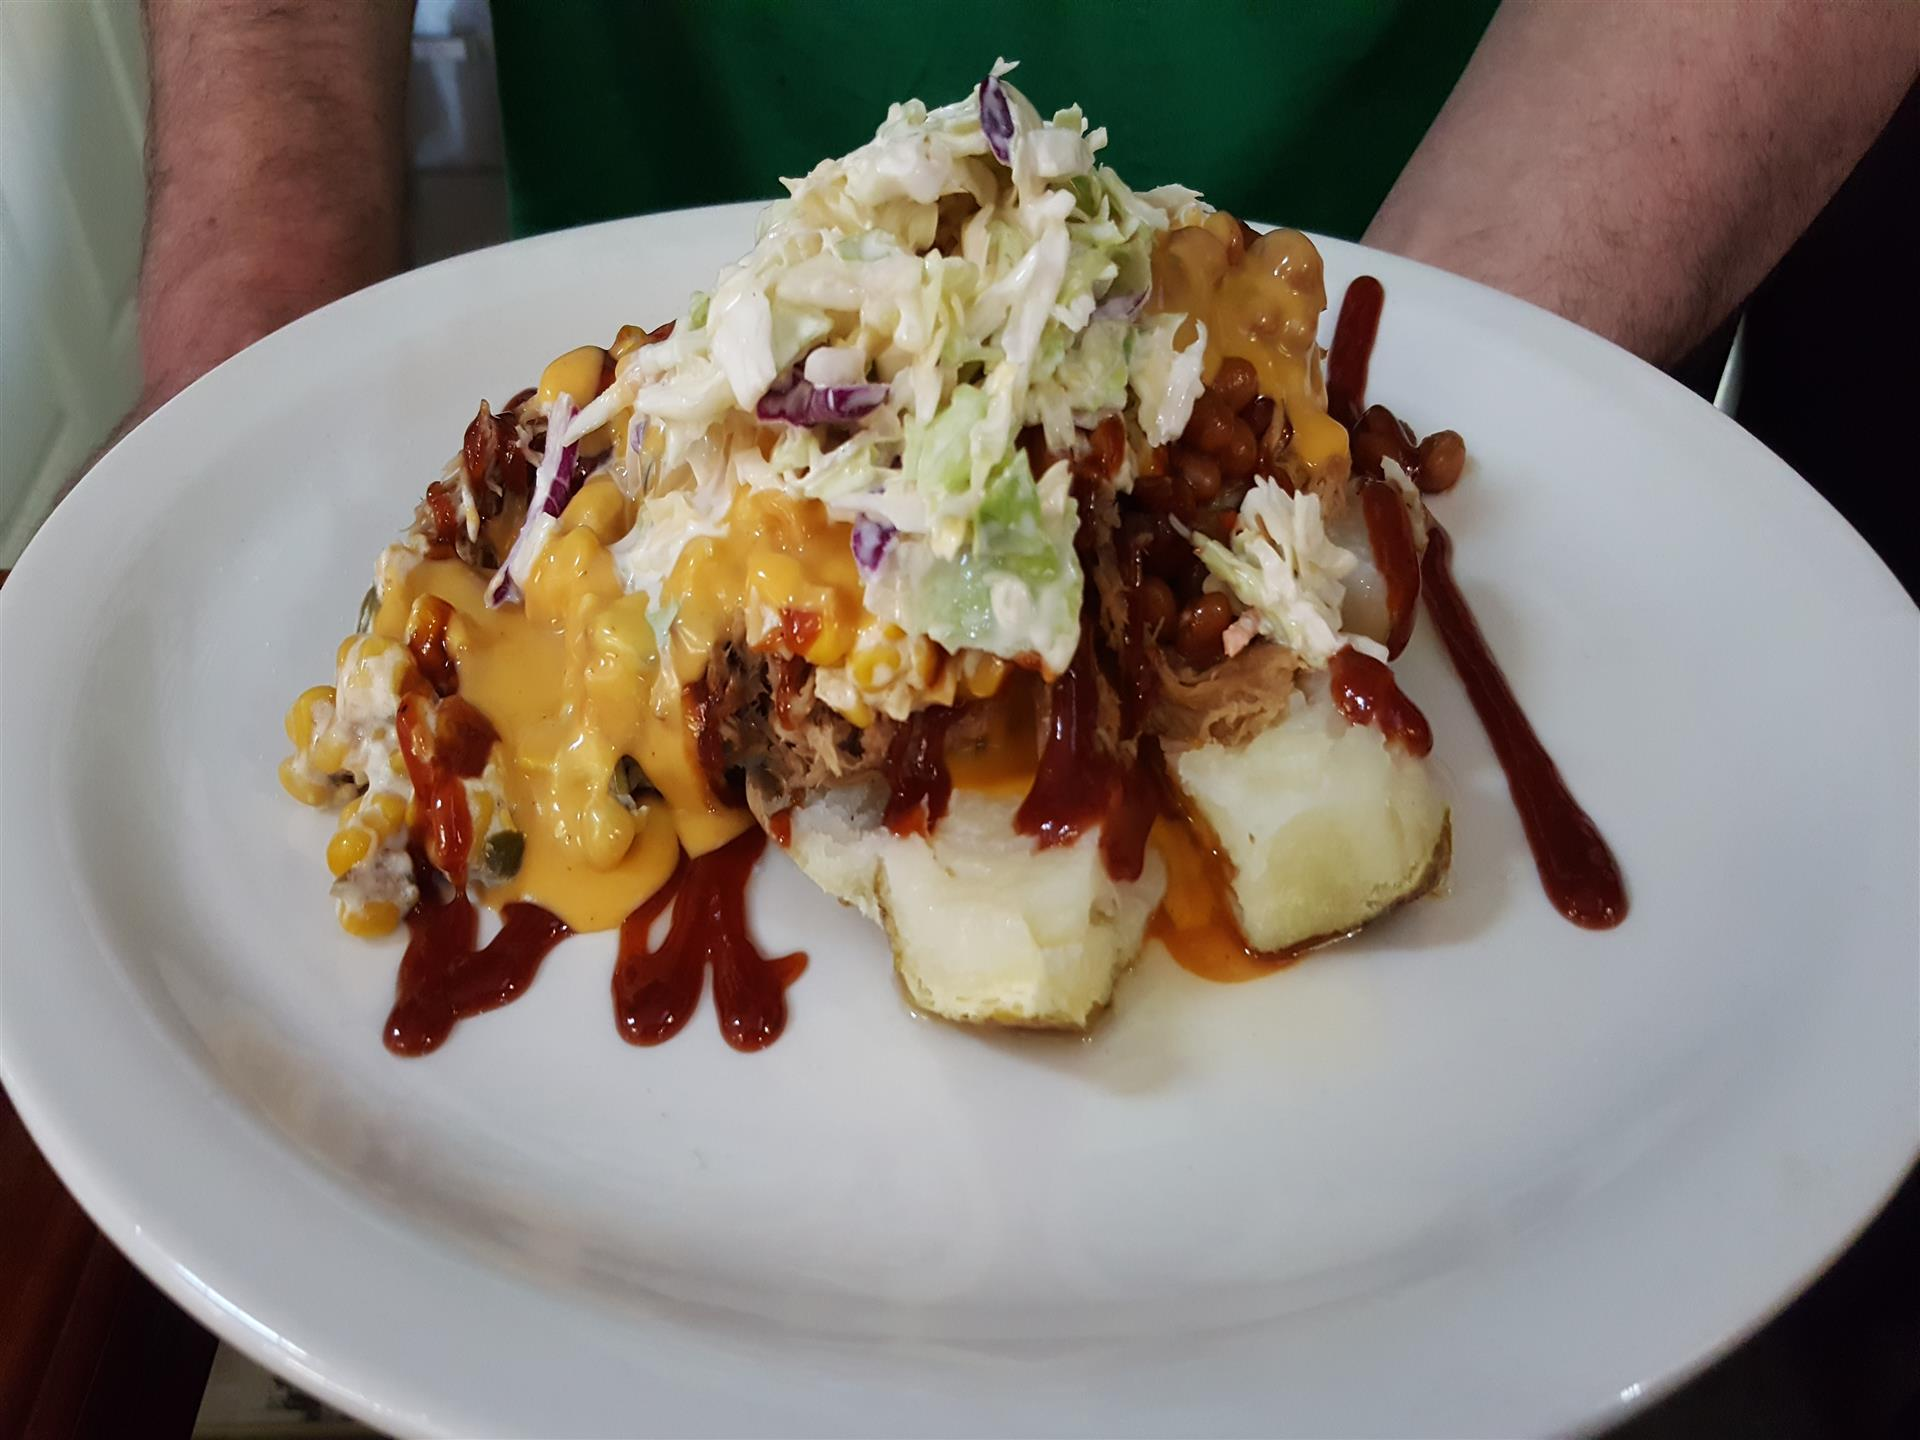 A dish of baked potato with pulled pork, baked beans, kickin' corn, slaw, BBQ sauce and cheddar sauce